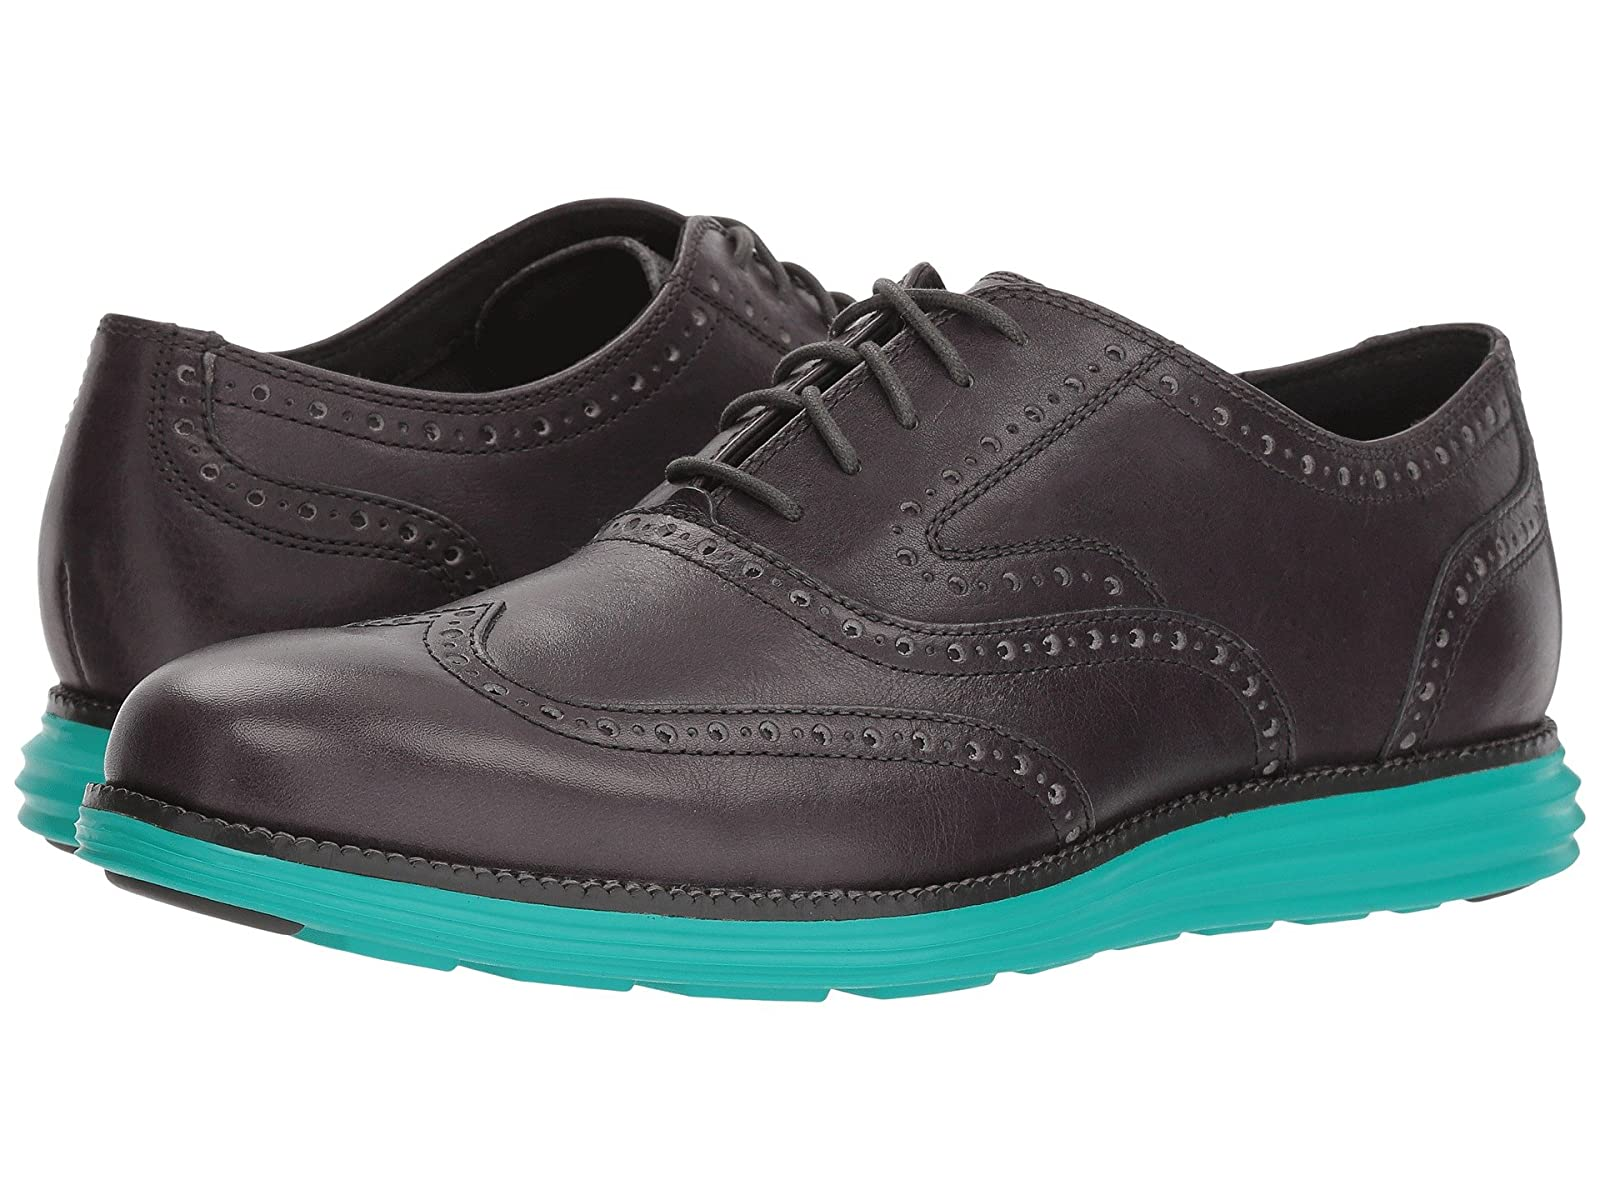 Cole Haan Original Grand Short Wing Ox IICheap and distinctive eye-catching shoes